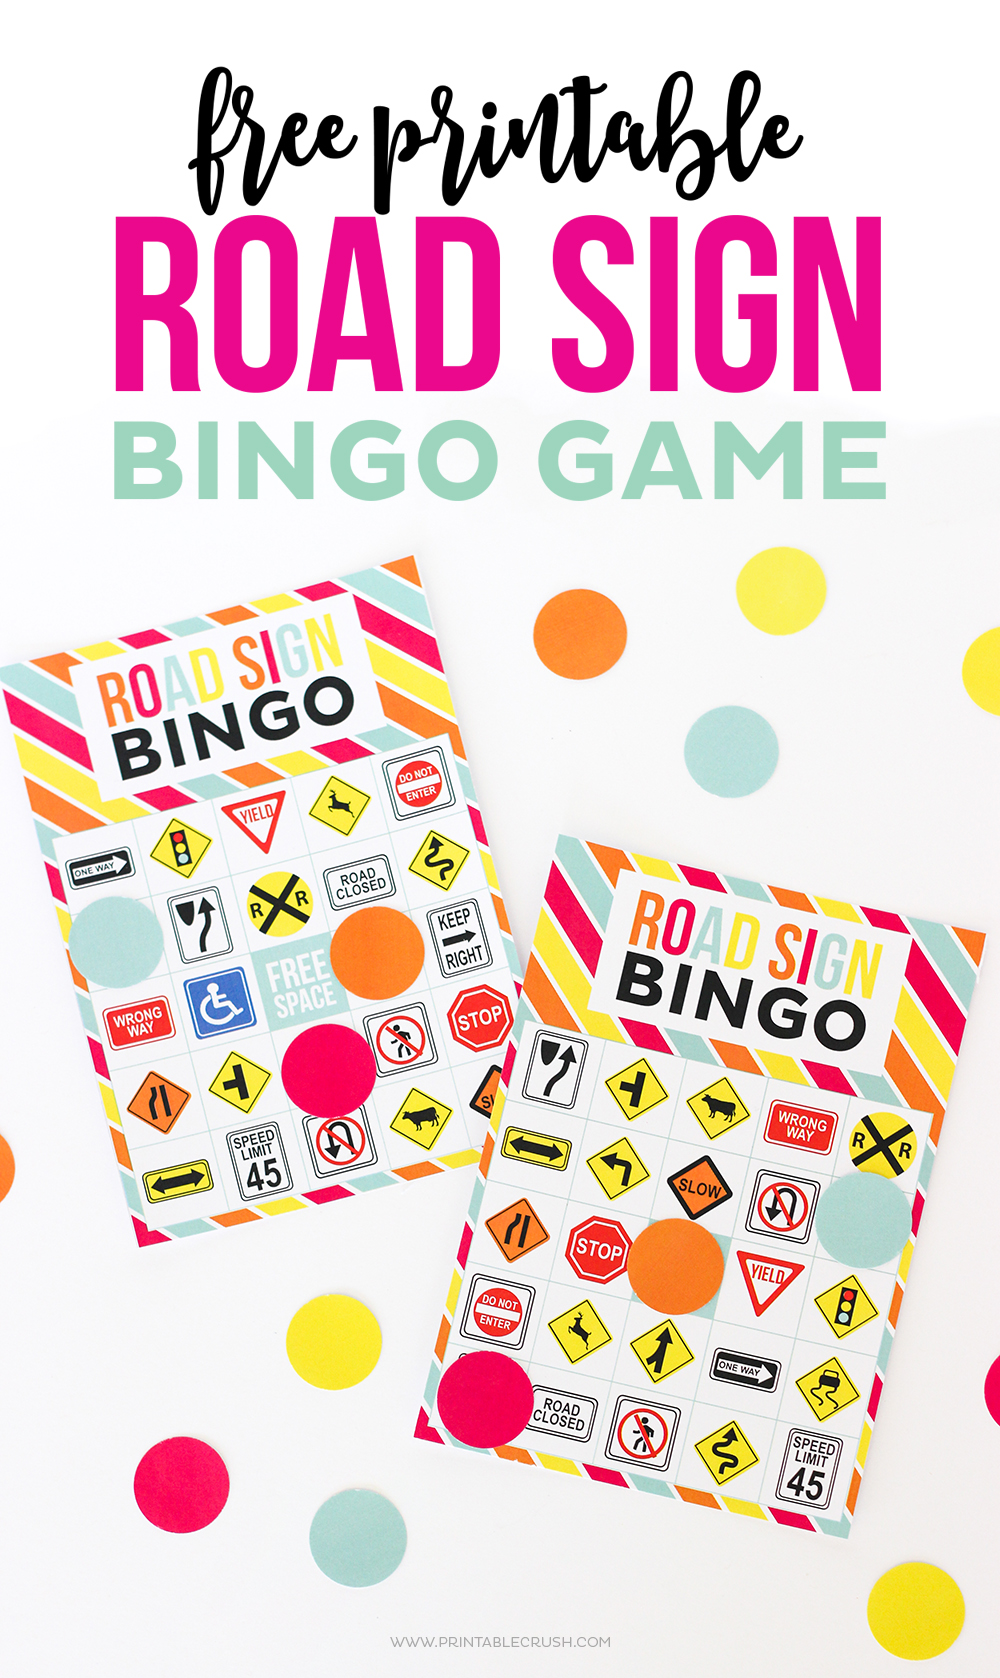 photograph regarding Free Printable Road Signs referred to as Totally free Printable Street Indicator Bingo Sport - Printable Crush